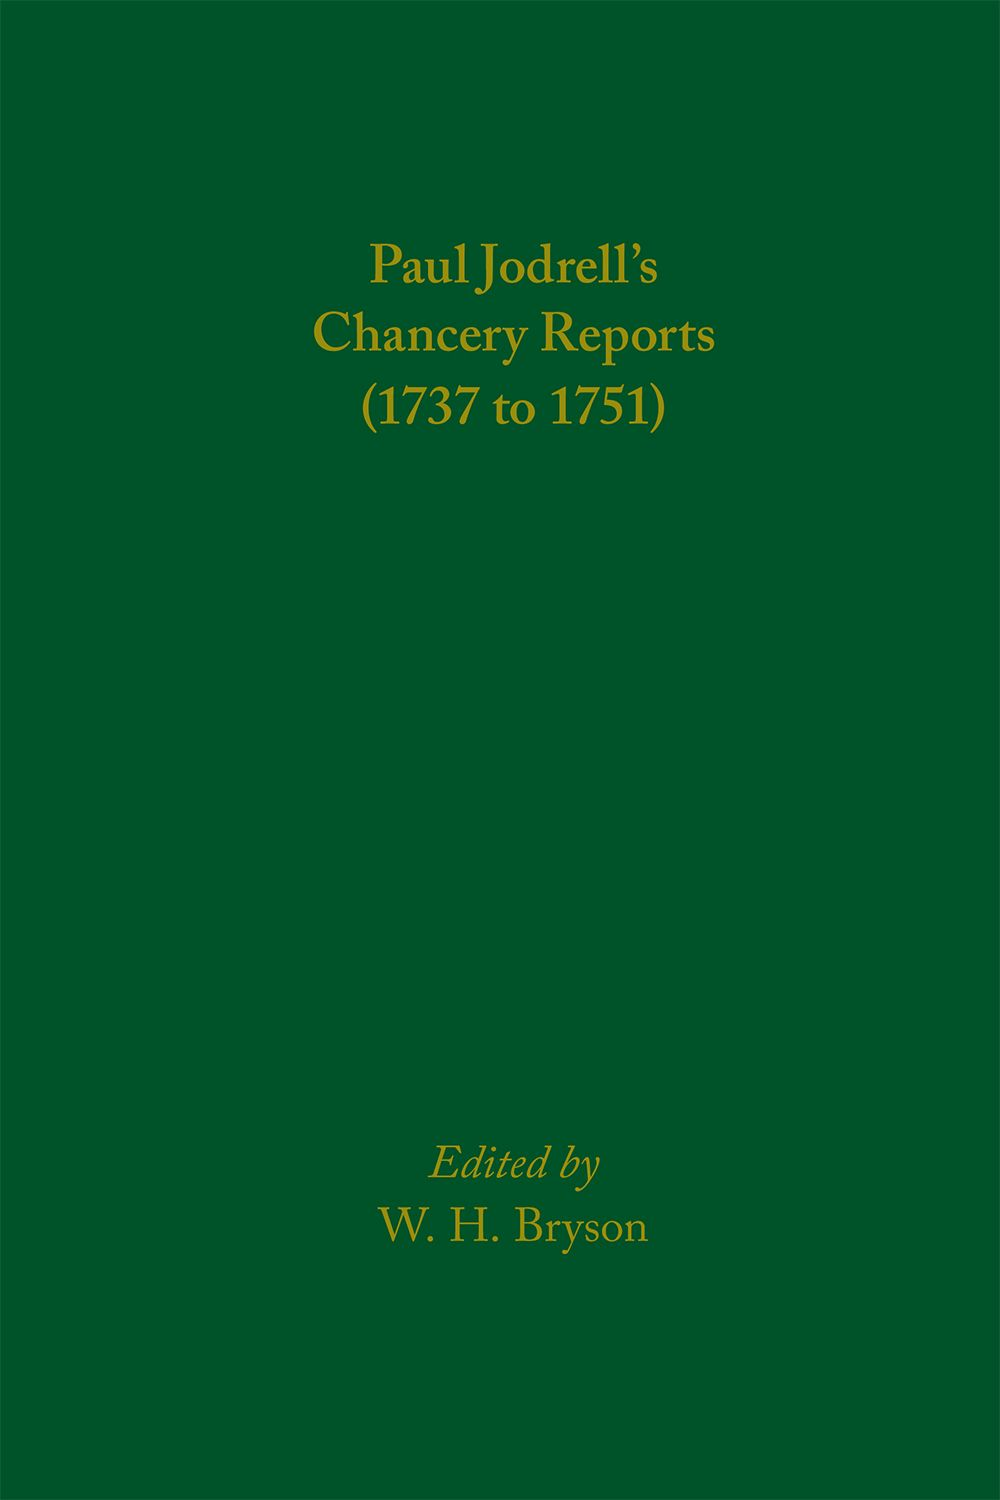 Paul Jodrell's Chancery Reports (1737 to 1751)